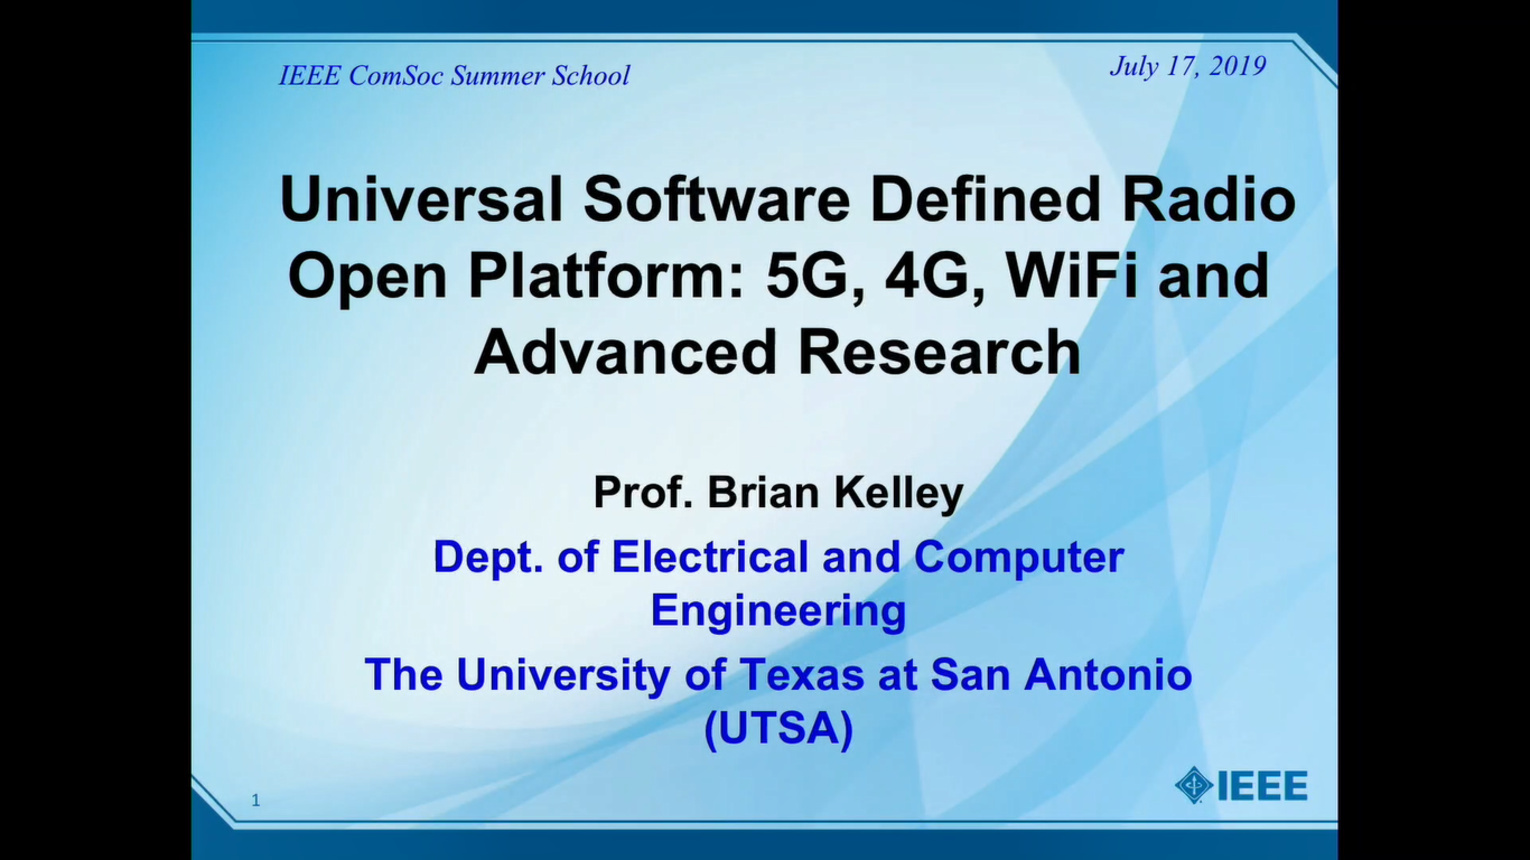 Universal Software Defined Radio Open Platform: 5G, 4G, WiFi and Advanced Research